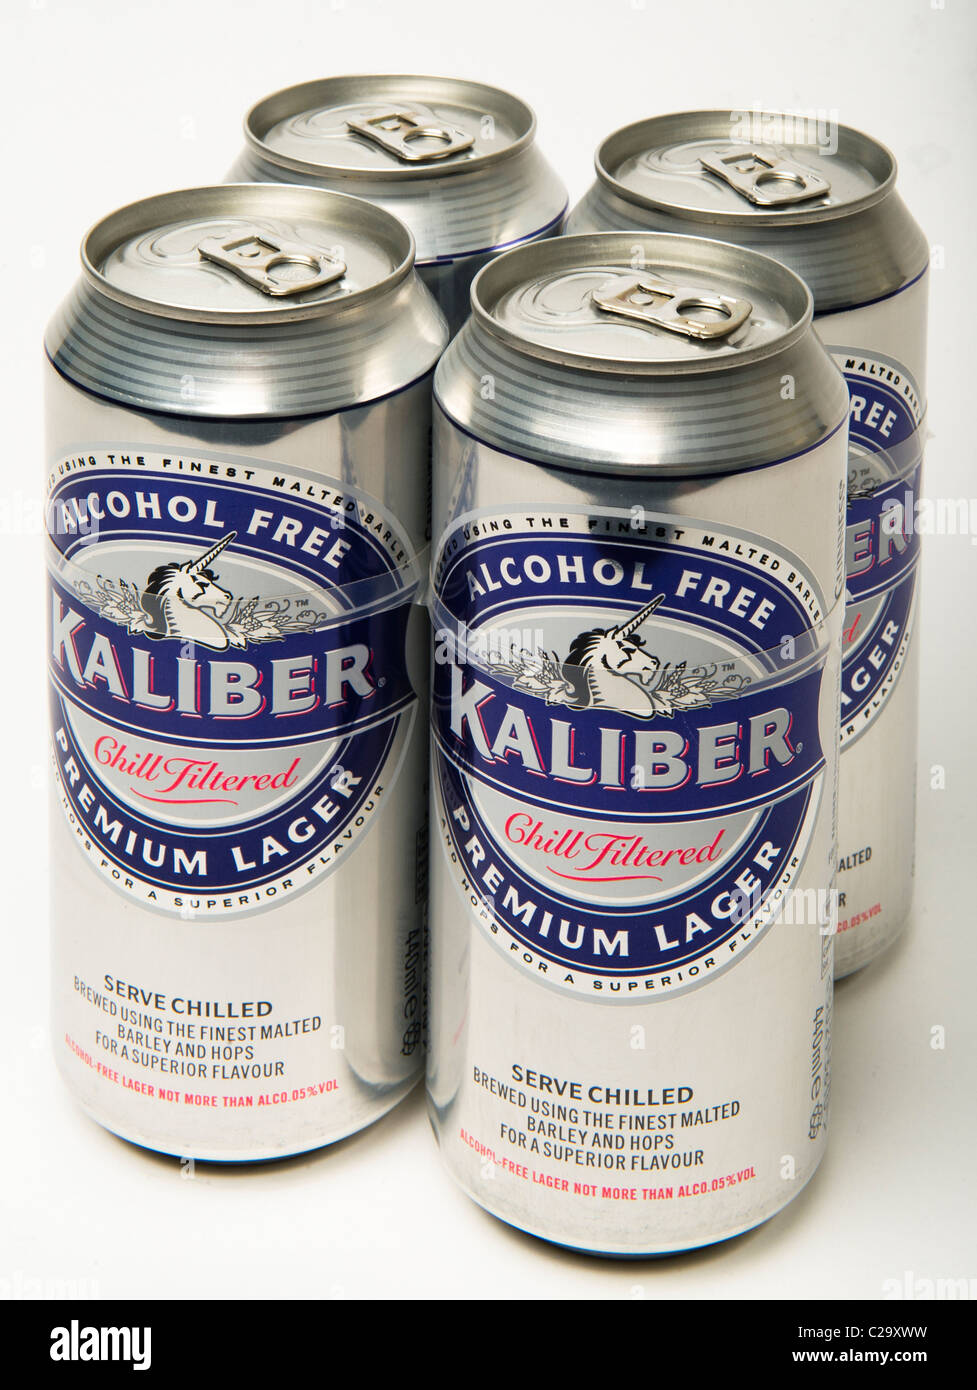 Kaliber alcohol free larger 0% - Stock Image